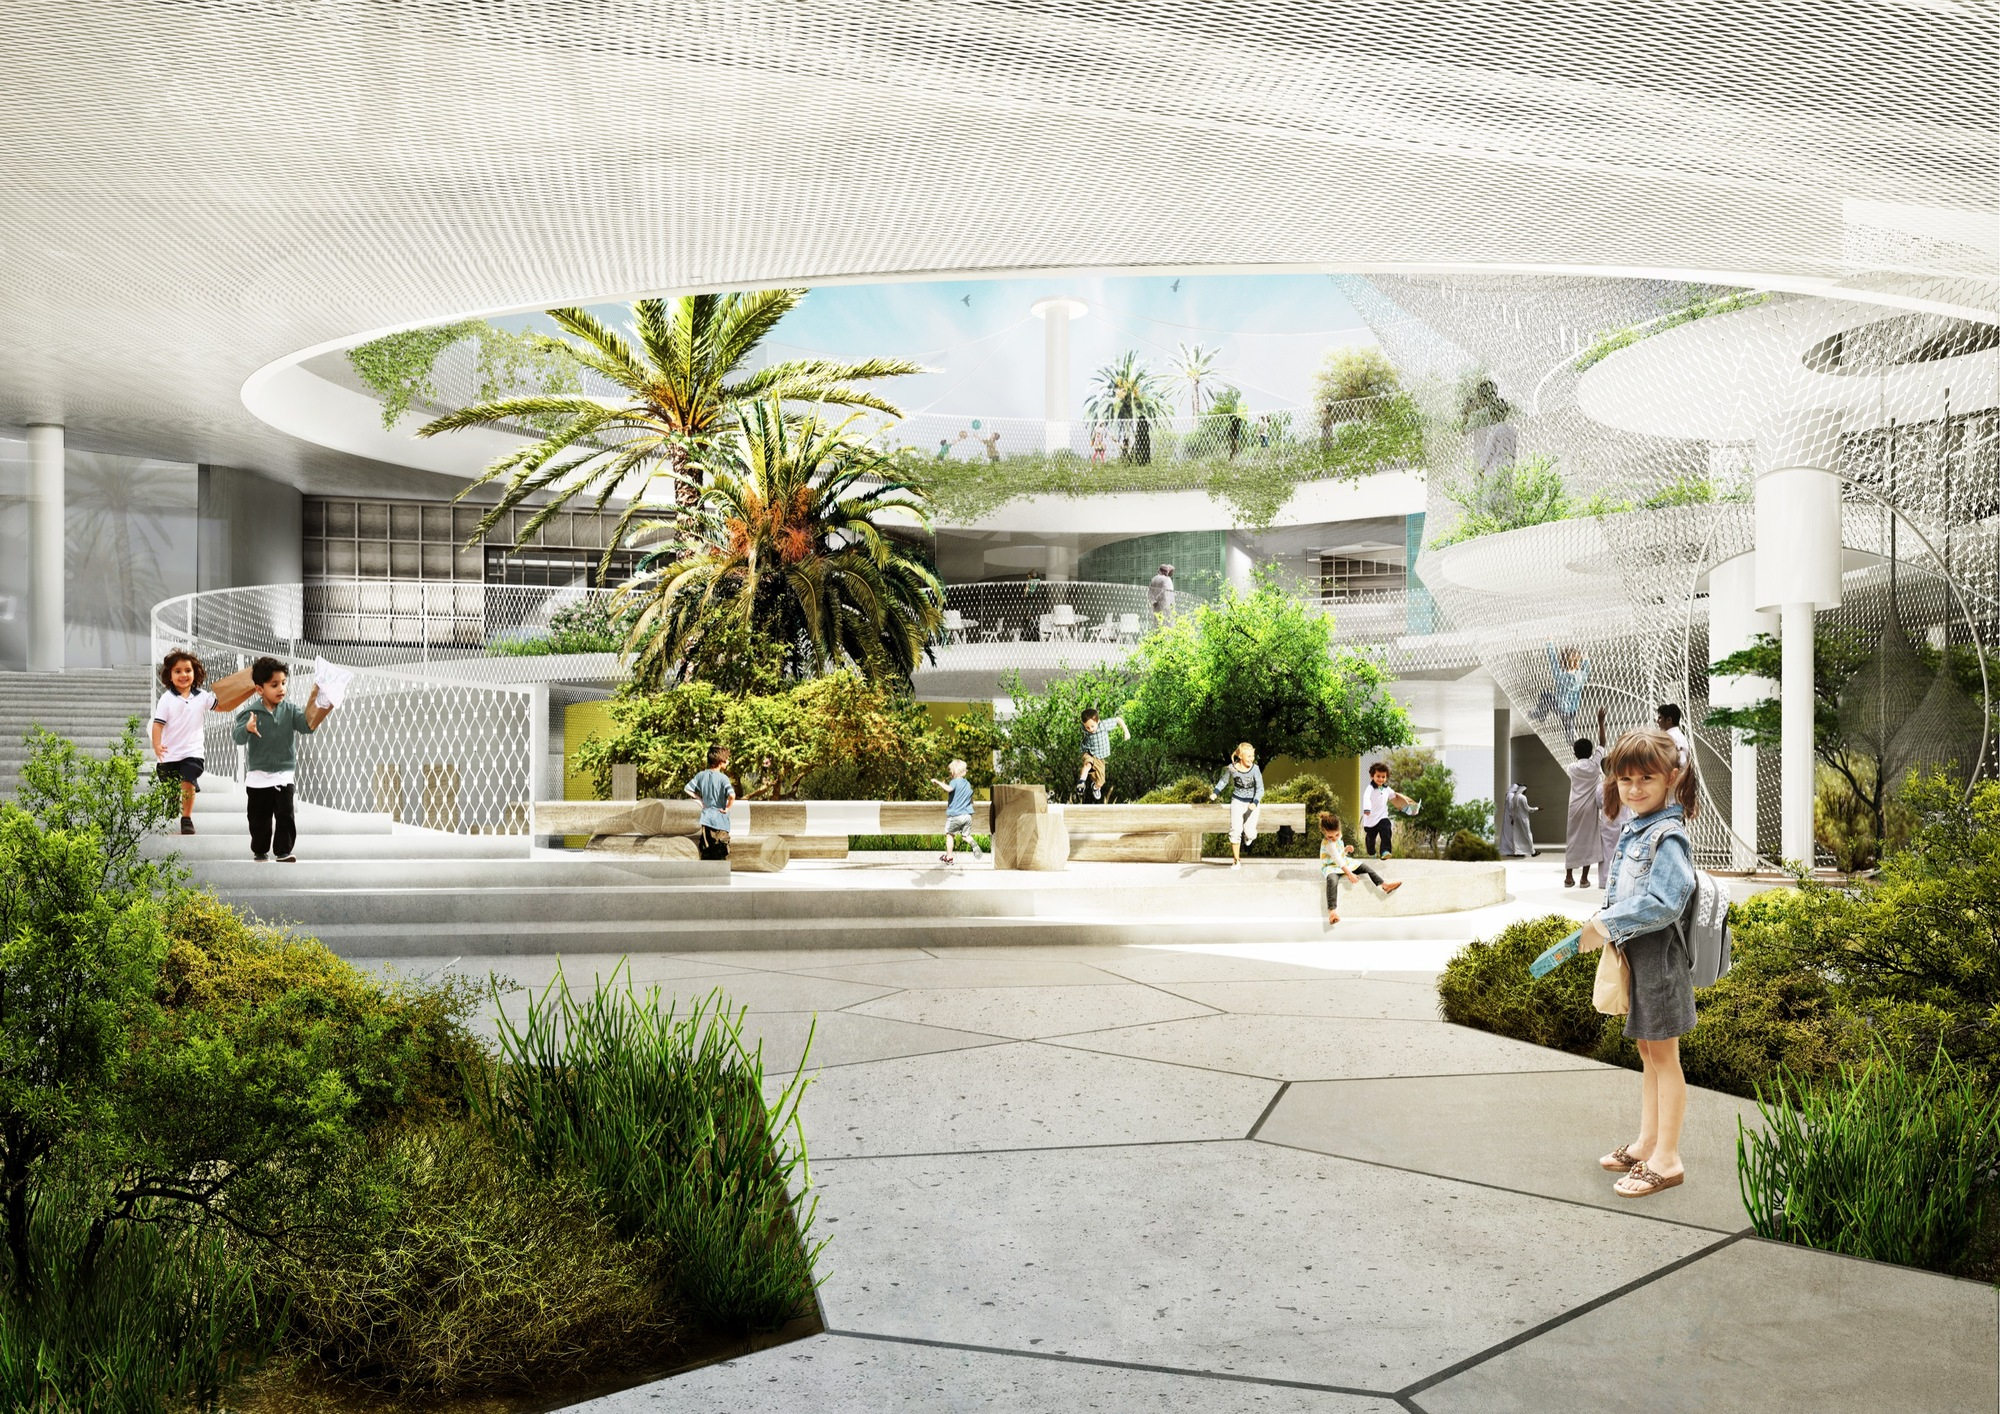 cebra and sla design a school for the sustainable city in dubai